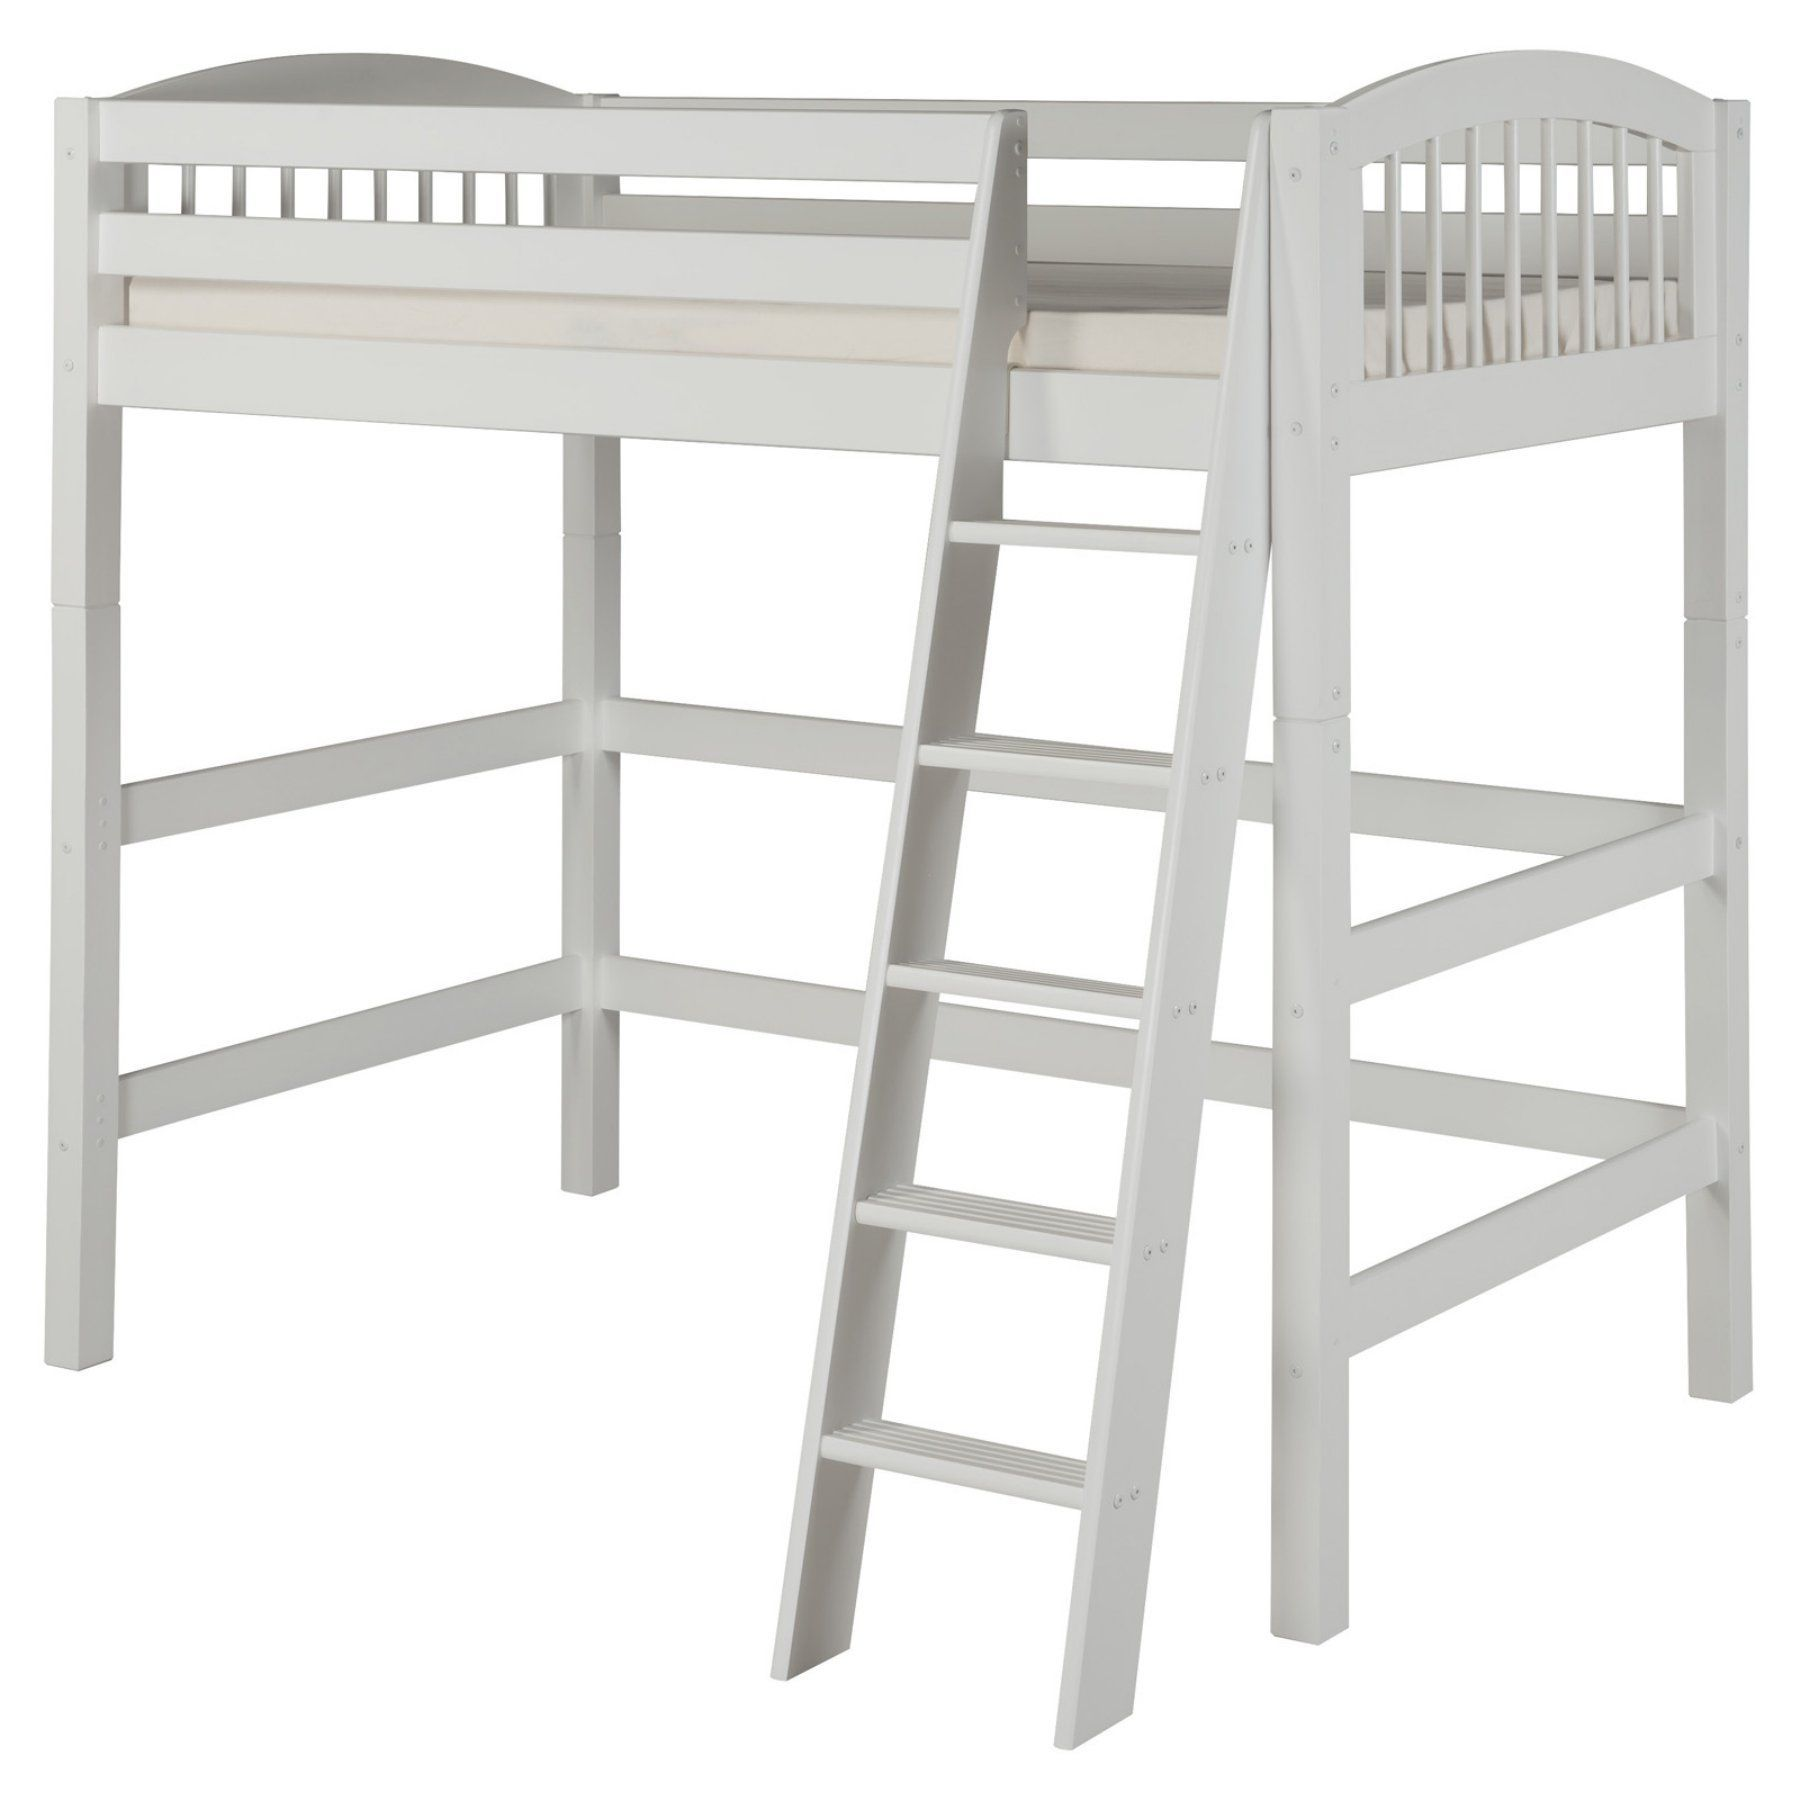 High loft bed with stairs  Camaflexi Arch Spindle Headboard High Loft Bed  CCP  Products